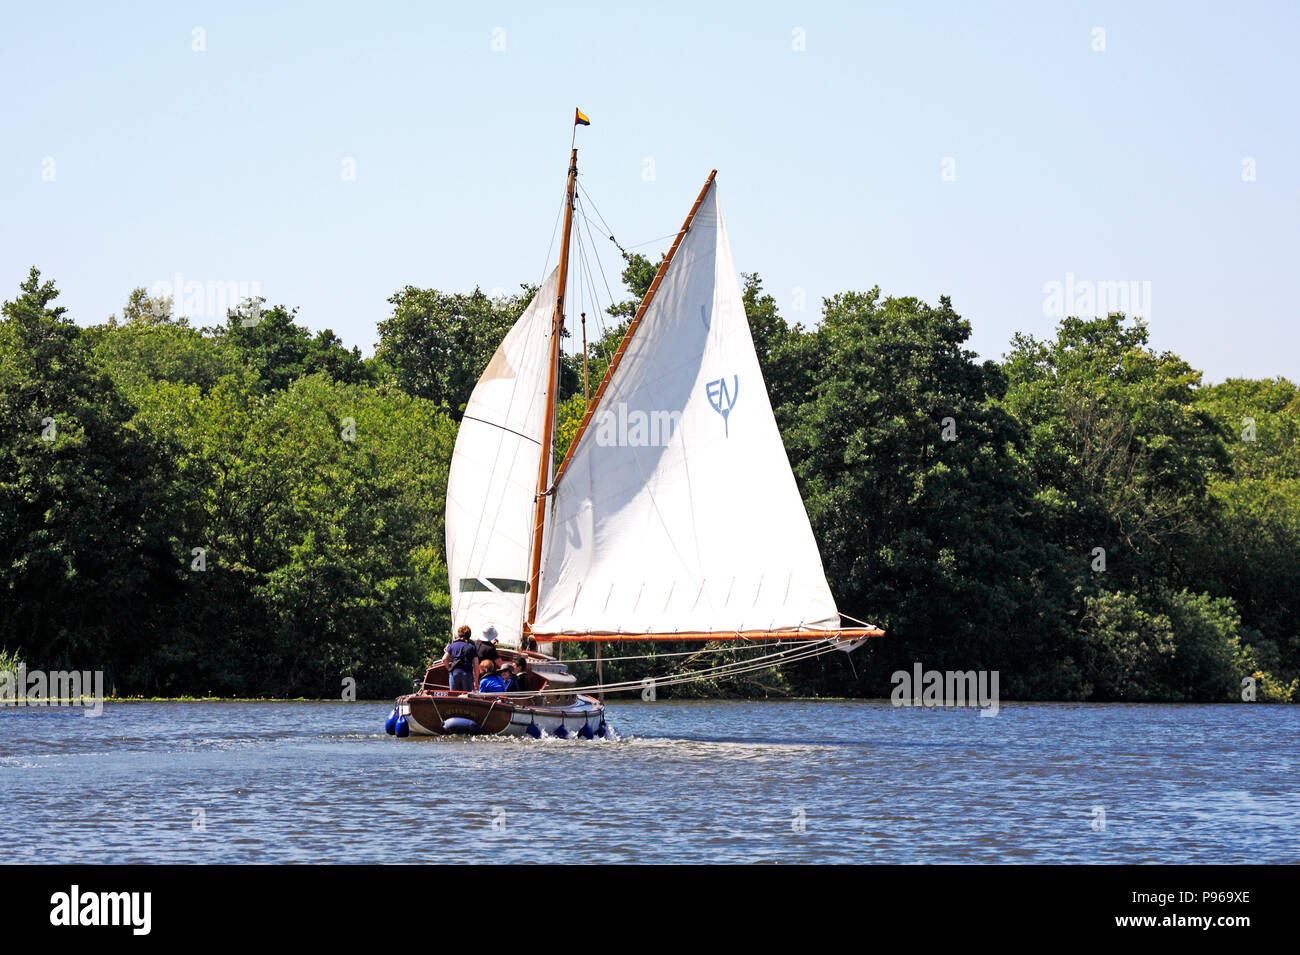 A yacht in full sail on a fair breeze on the River Bure on the Norfolk Broads near Horning, Norfolk, England, United Kingdom, Europe. - Stock Image